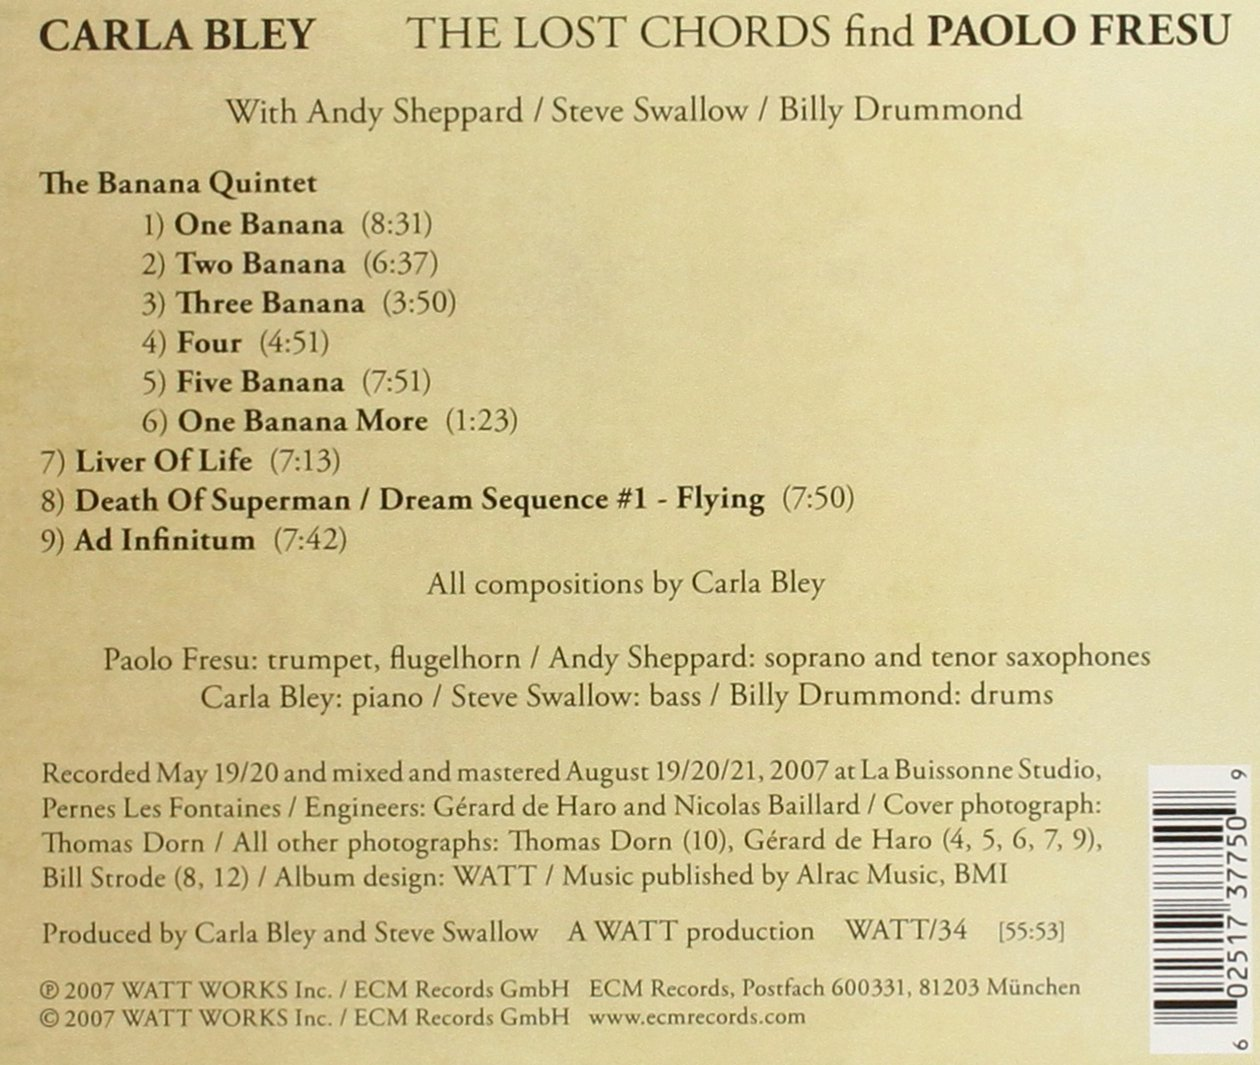 Carla Bley The Lost Chords Find Paolo Fresu Amazon Music